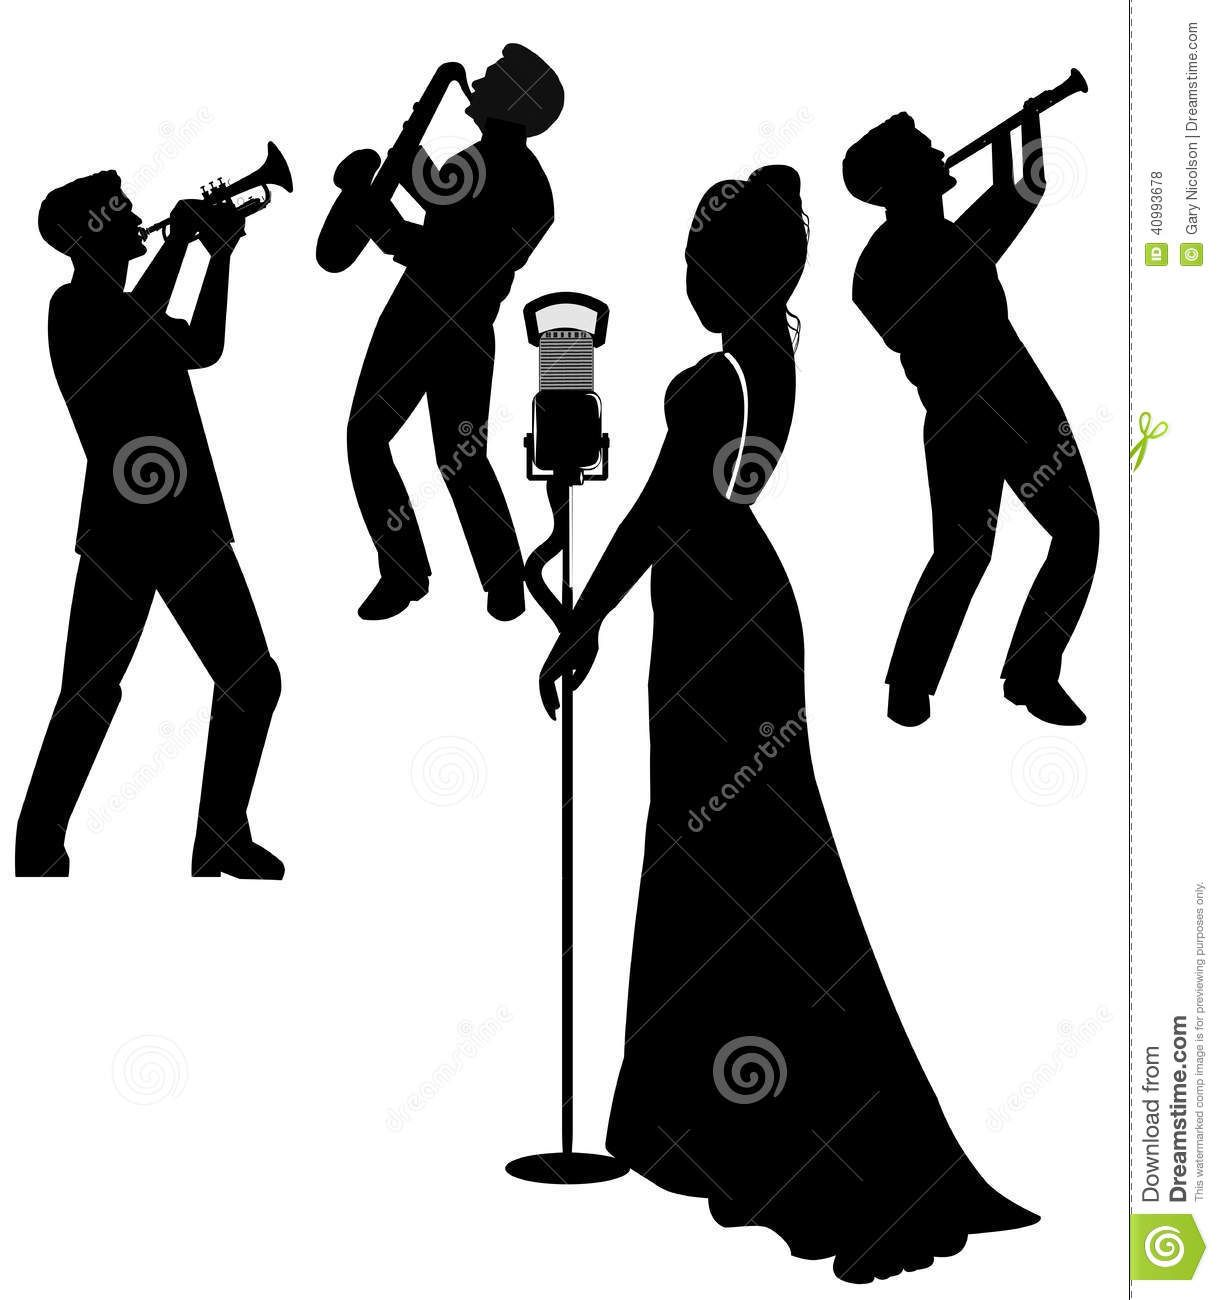 Images for singer clip. Jazz clipart jazz club